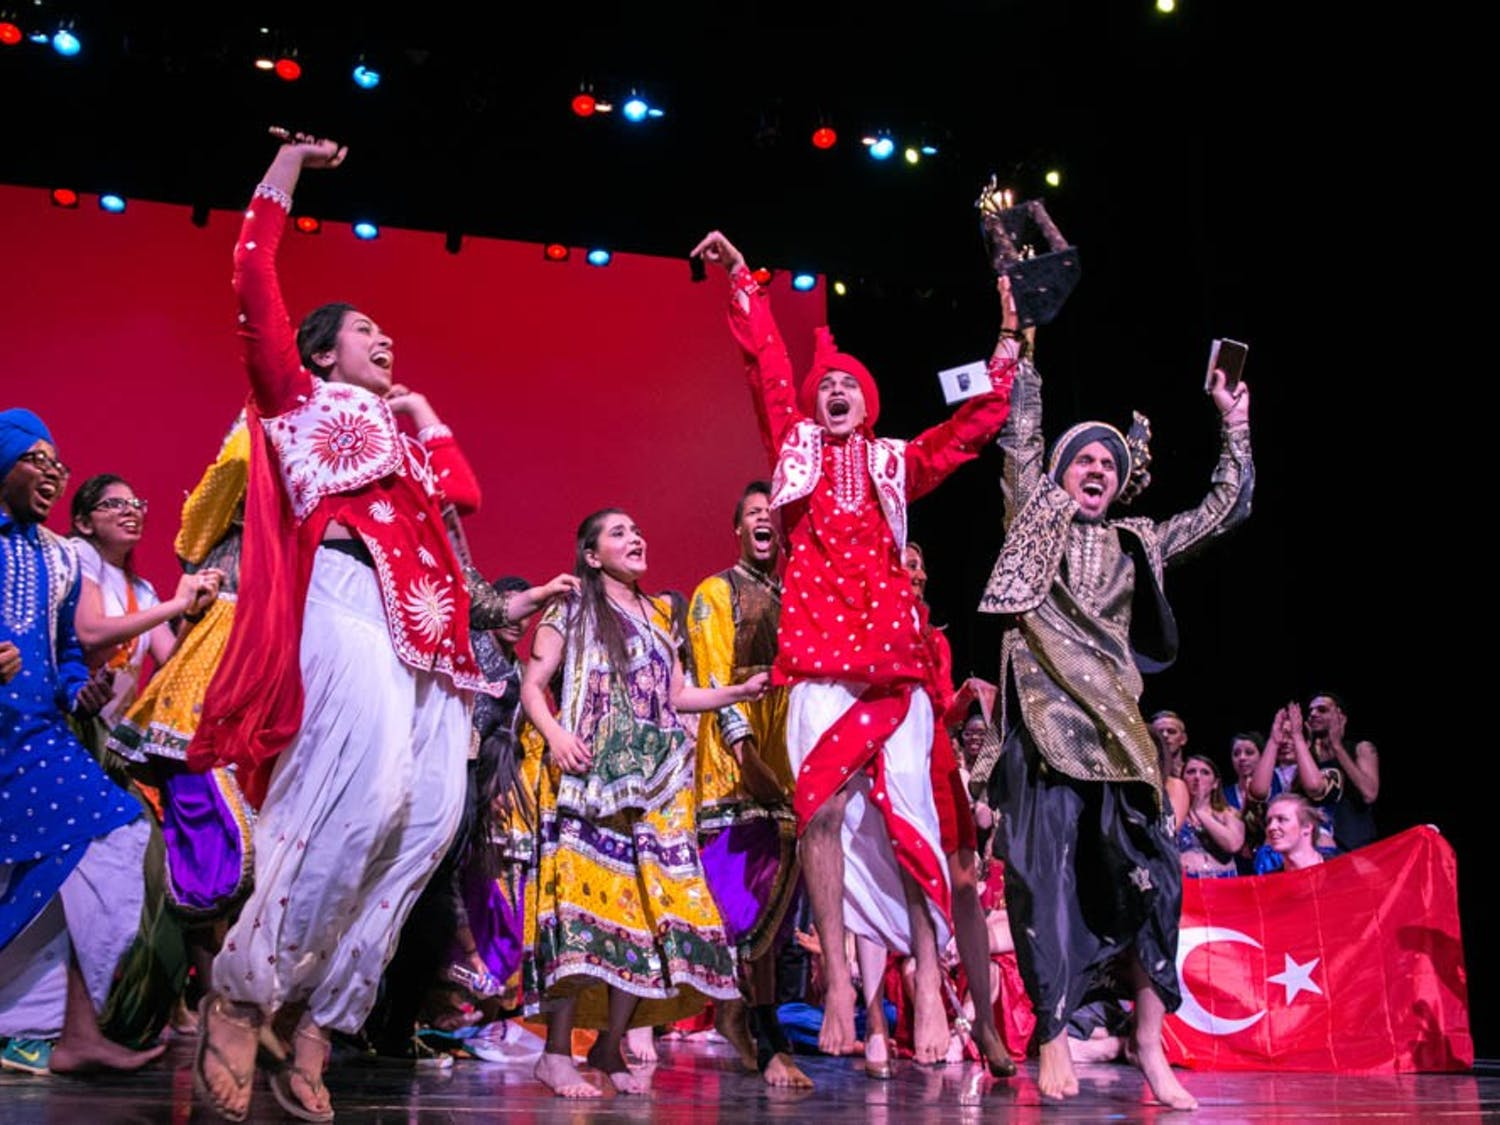 International Fiesta is UB's annual celebration of the different cultures on campus that are represented through dance and music. Indian Student Association won this year's competition.